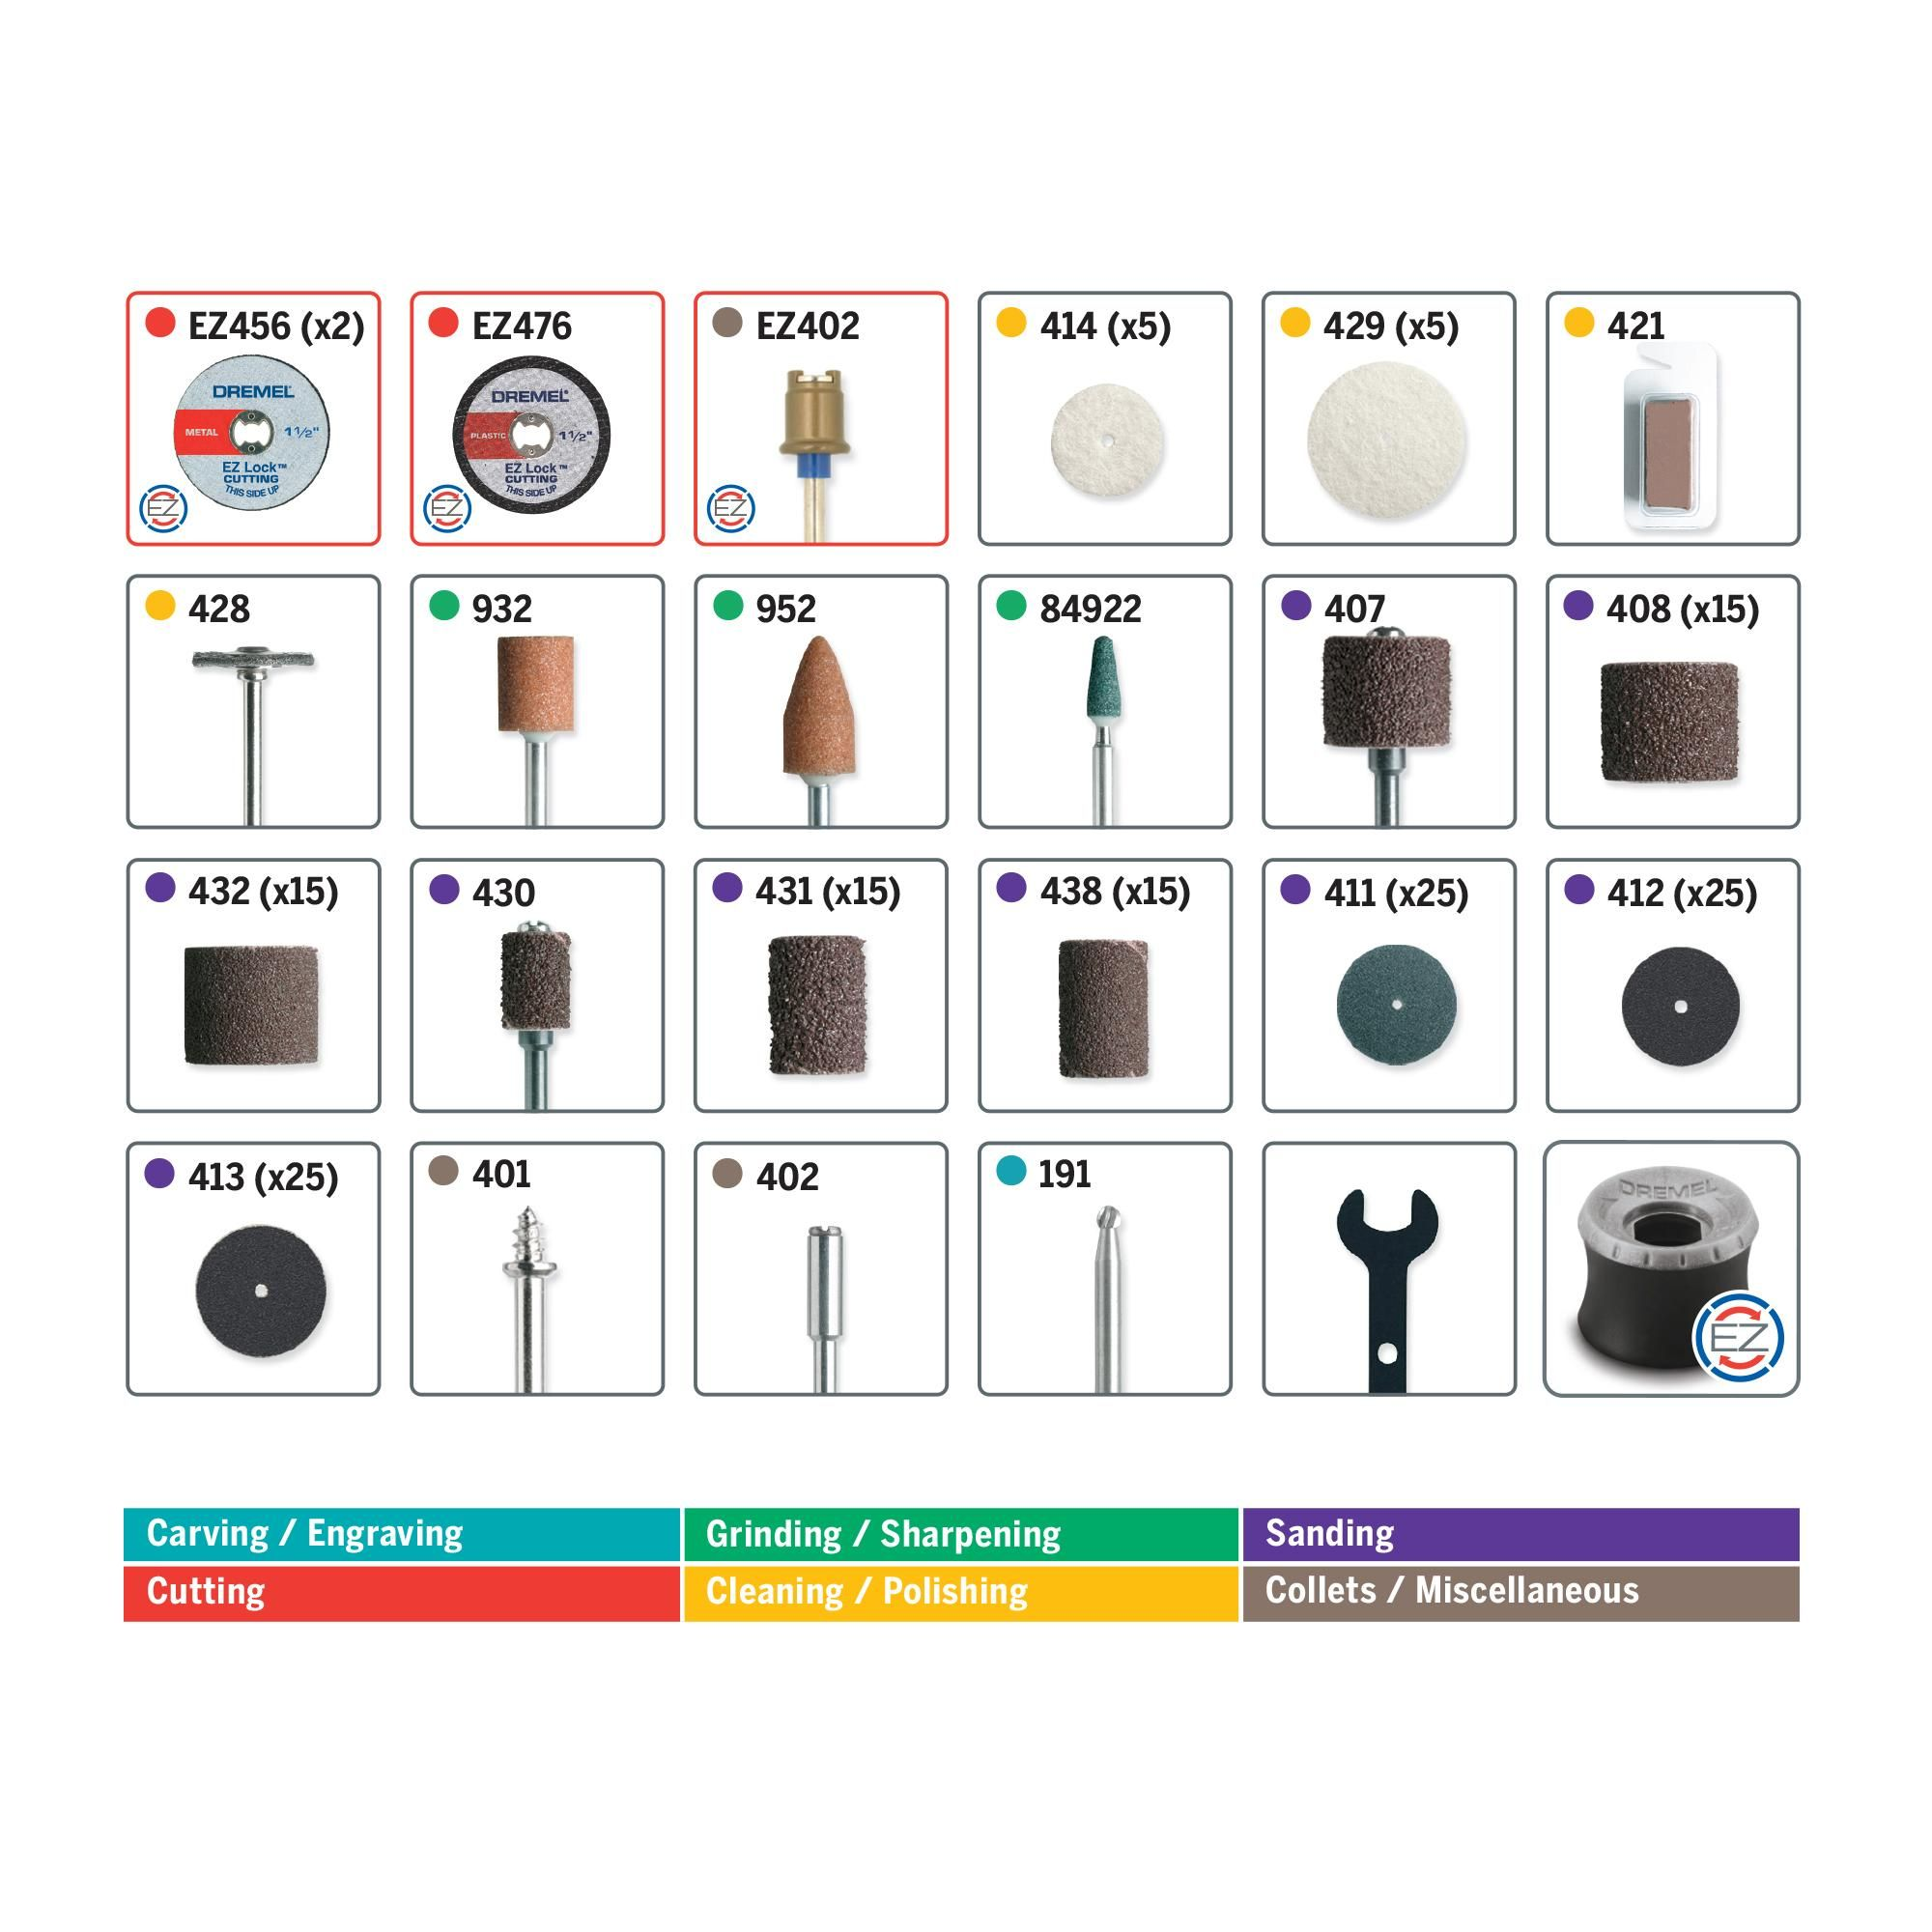 Dremel Accessory Chart And Code As To What Each Is Used For Dremel Dremel Accessories Dremel Rotary Tool